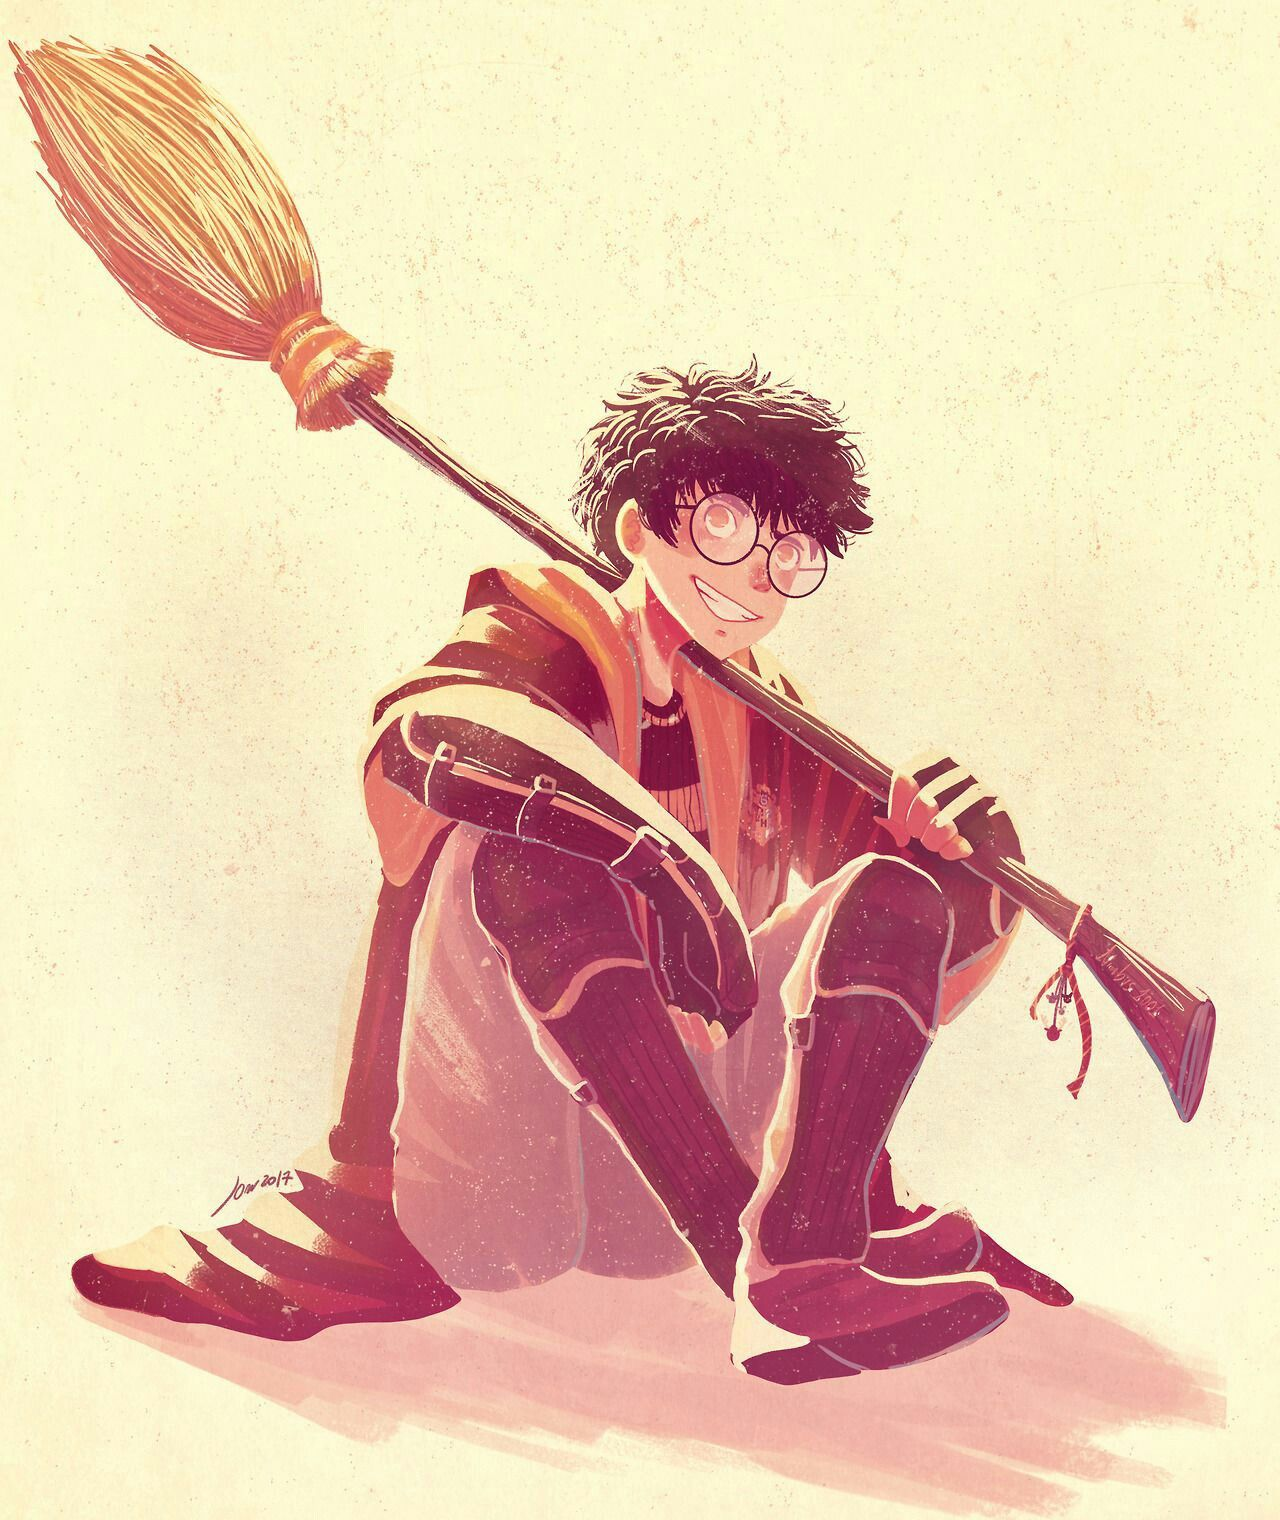 Pin by Рика on •HOGWARTS• Harry potter anime, Harry